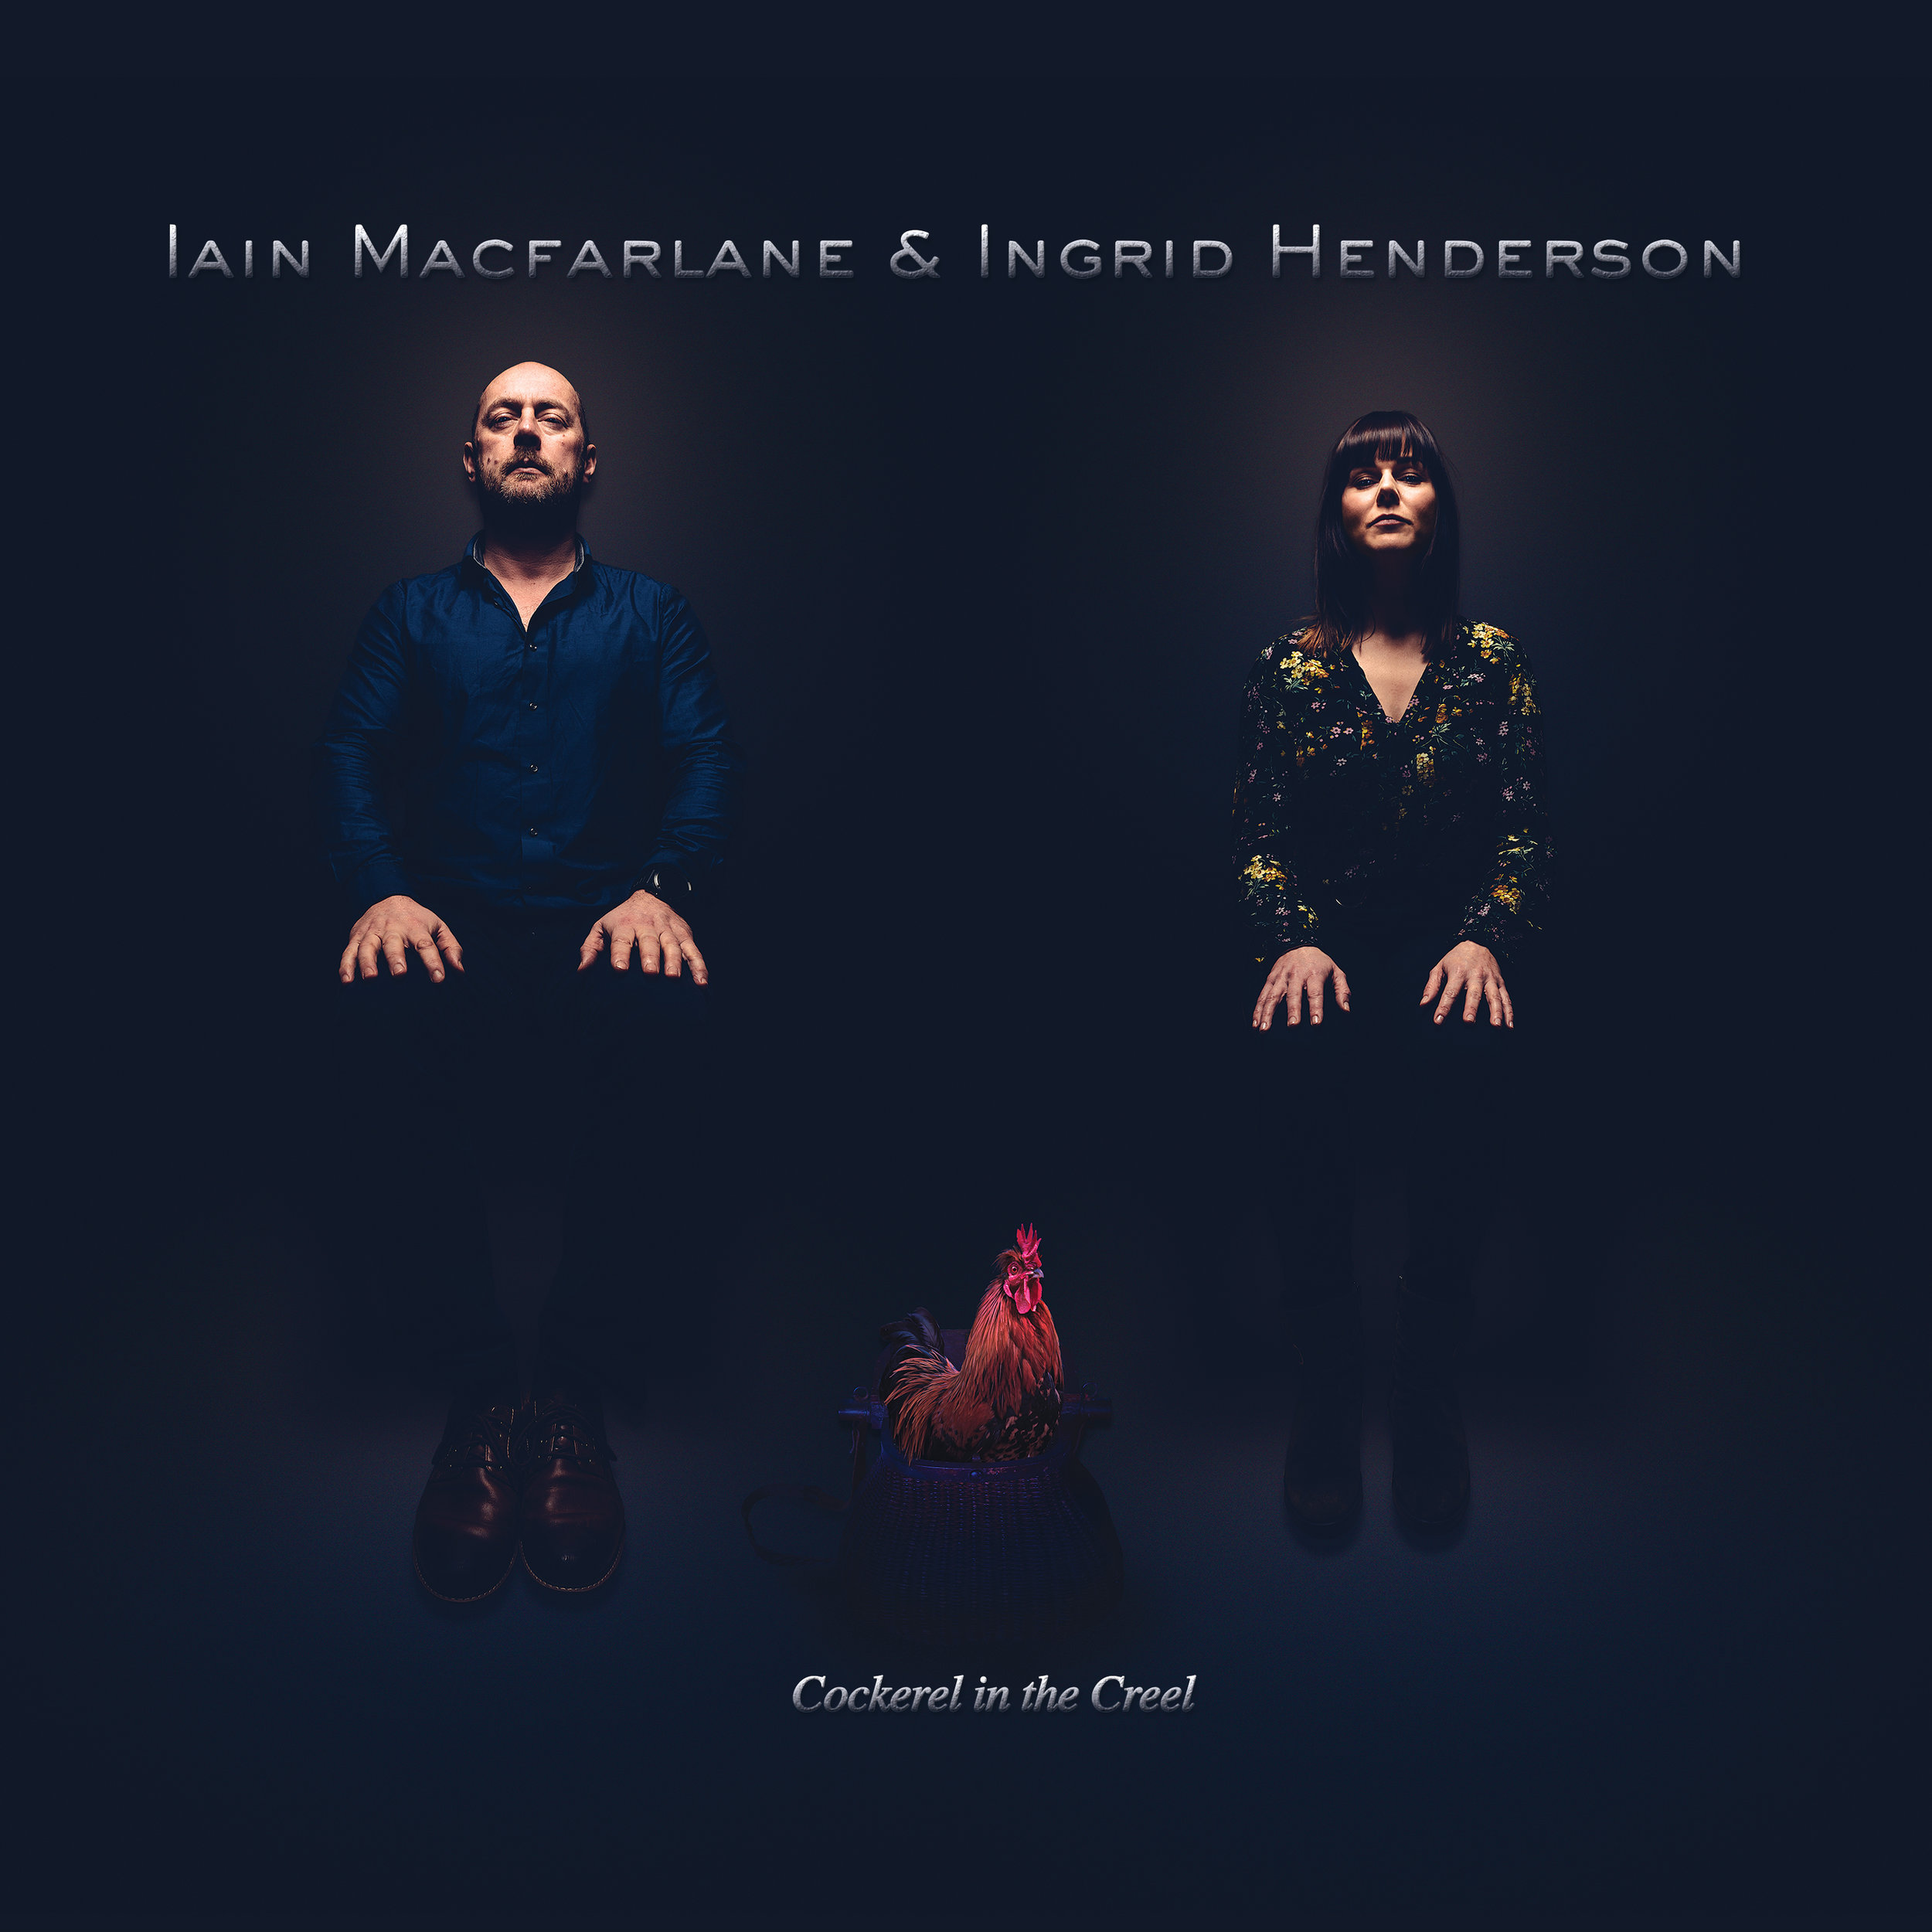 """NEW DUO ALBUM OUT MAY 2019 - The debut album from these two stalwarts of the traditional music will be released on Thursday 9th May. Combining years of experience playing with bands such as Blazin' Fiddles and Cliar, multi-instrumentalists, and stalwarts of the traditional music world, Iain MacFarlane & Ingrid Henderson create a sound which is reflective of the stunning, culture-rich Lochaber area they grew up in. Based mainly on harp and fiddle, and mixing traditional and newly written material, they combine rousing marches, jigs and reels with poignant slow airs of love and loss, giving the listener a unique insight into the rich culture of the West Highlands. The album was recorded in their Old Laundry Studio, Glenfinnan.""""Stories of the derivation of tunes and recollections enrich MacFarlane's superbly fluent, always expressive way with a melody"""" Rob Adams, The Herald""""Ingrid is a musician of quite outstanding calibre, a virtuoso in terms of sensibility."""" Living Tradition"""